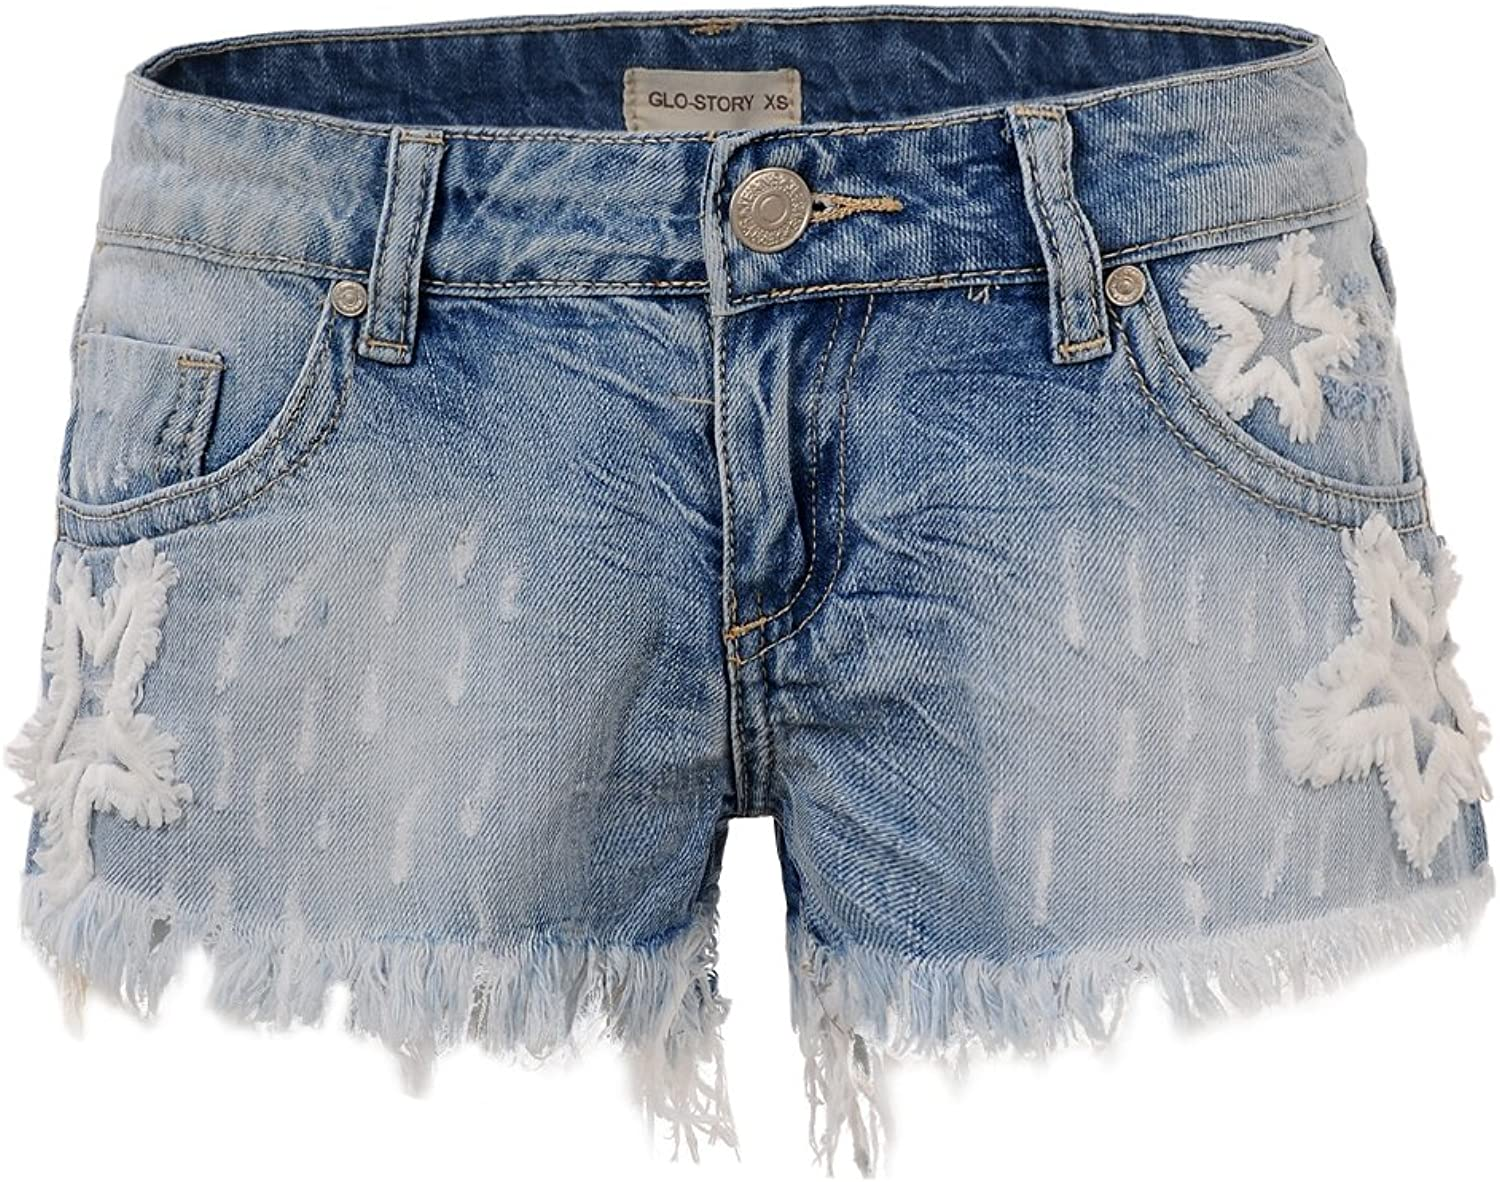 GLOSTORY Women's Causal Low Waist Tassels Skinny Juniors Vintage Denim Shorts WNK2191